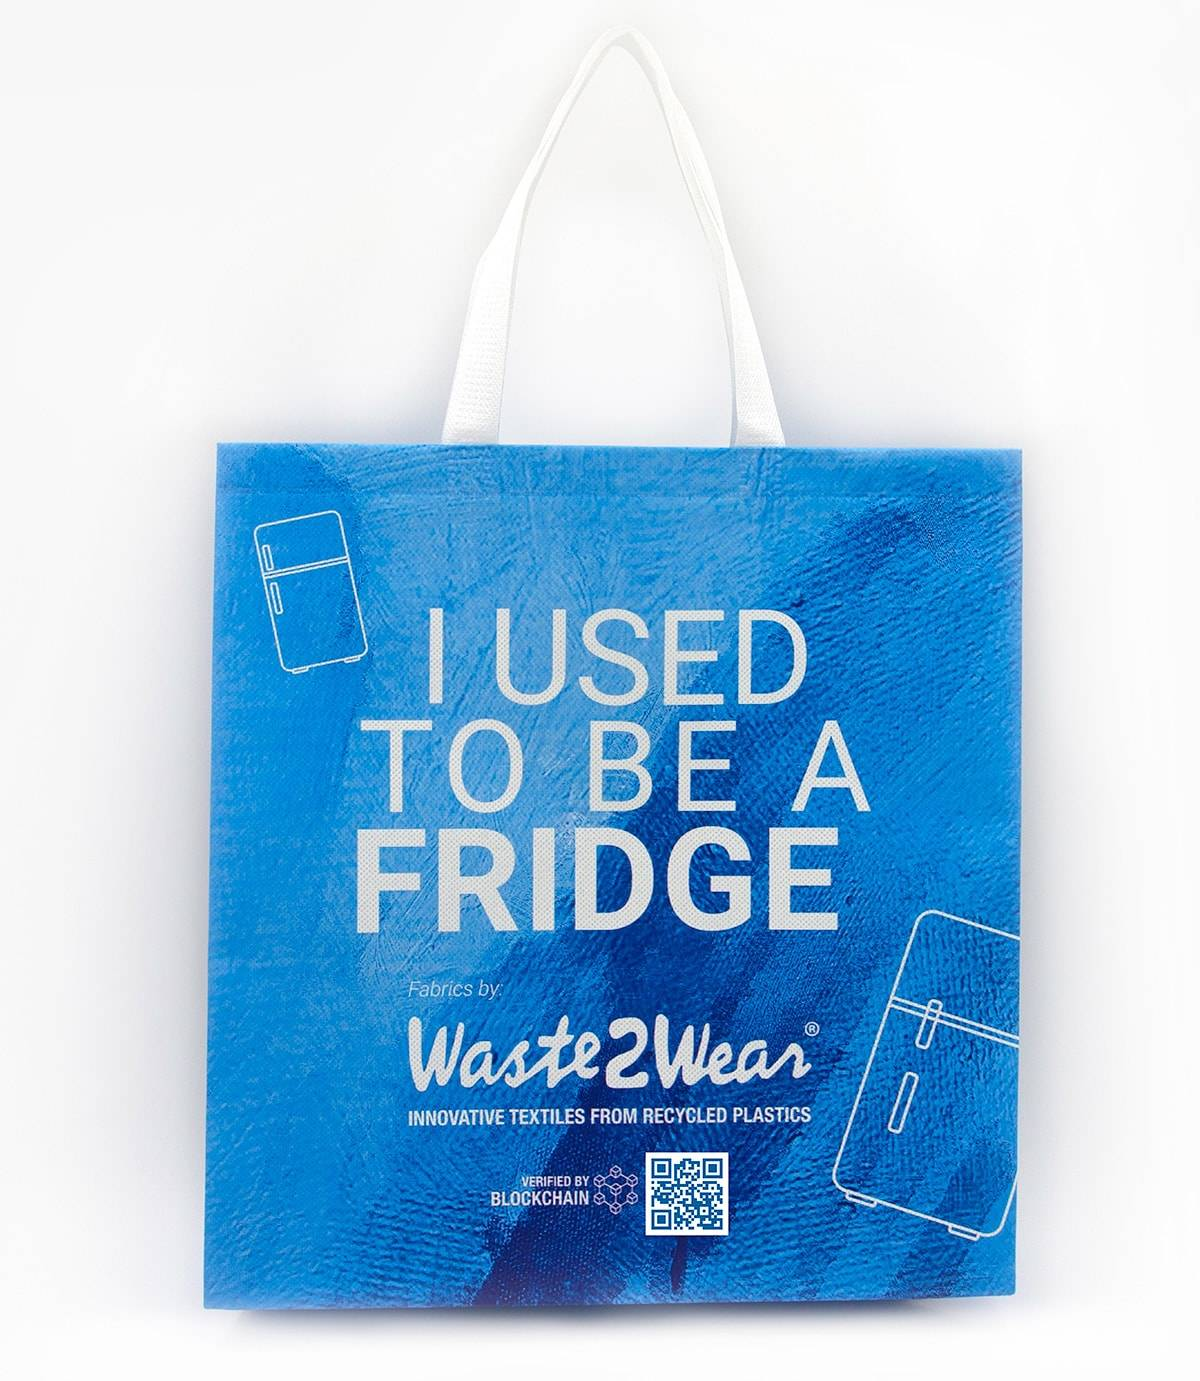 Waste2Wear: A crisis turned an opportunity